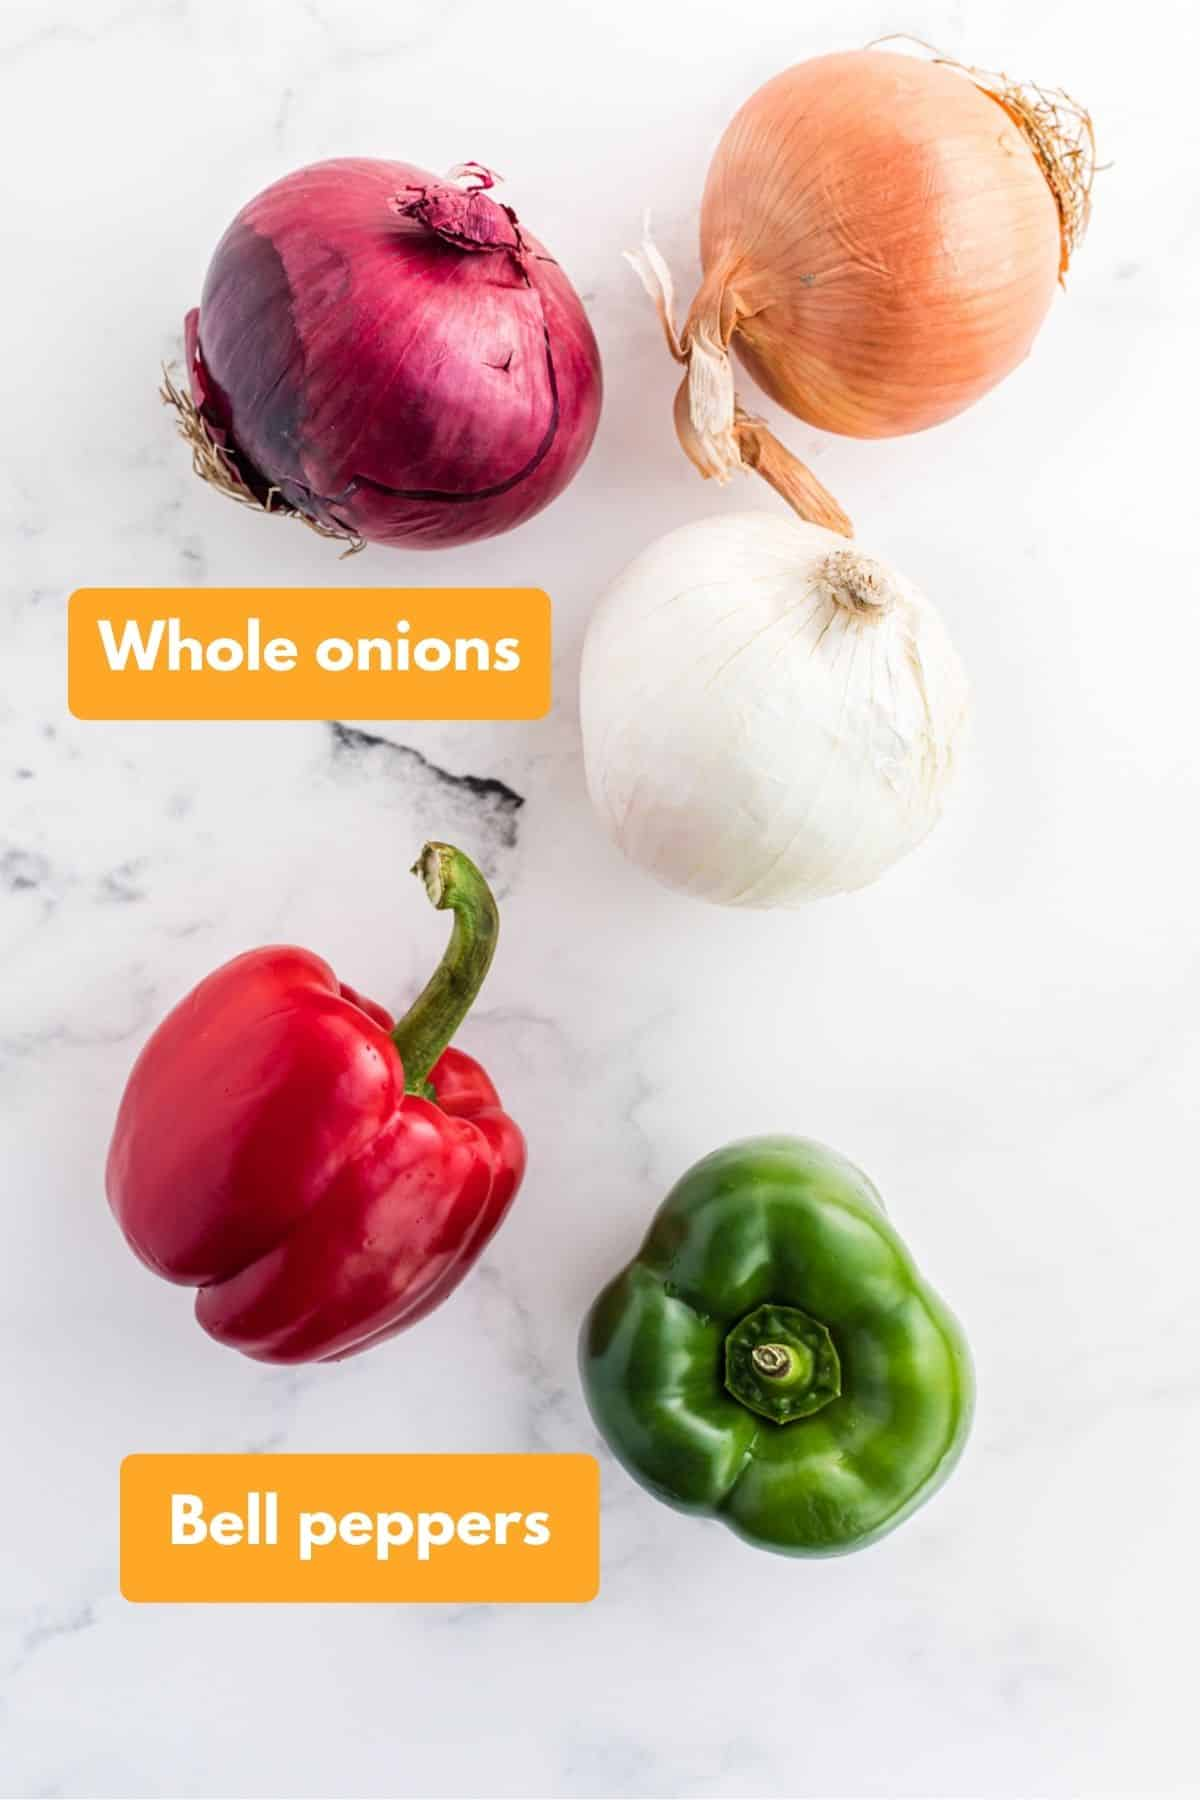 Whole onions and bell peppers